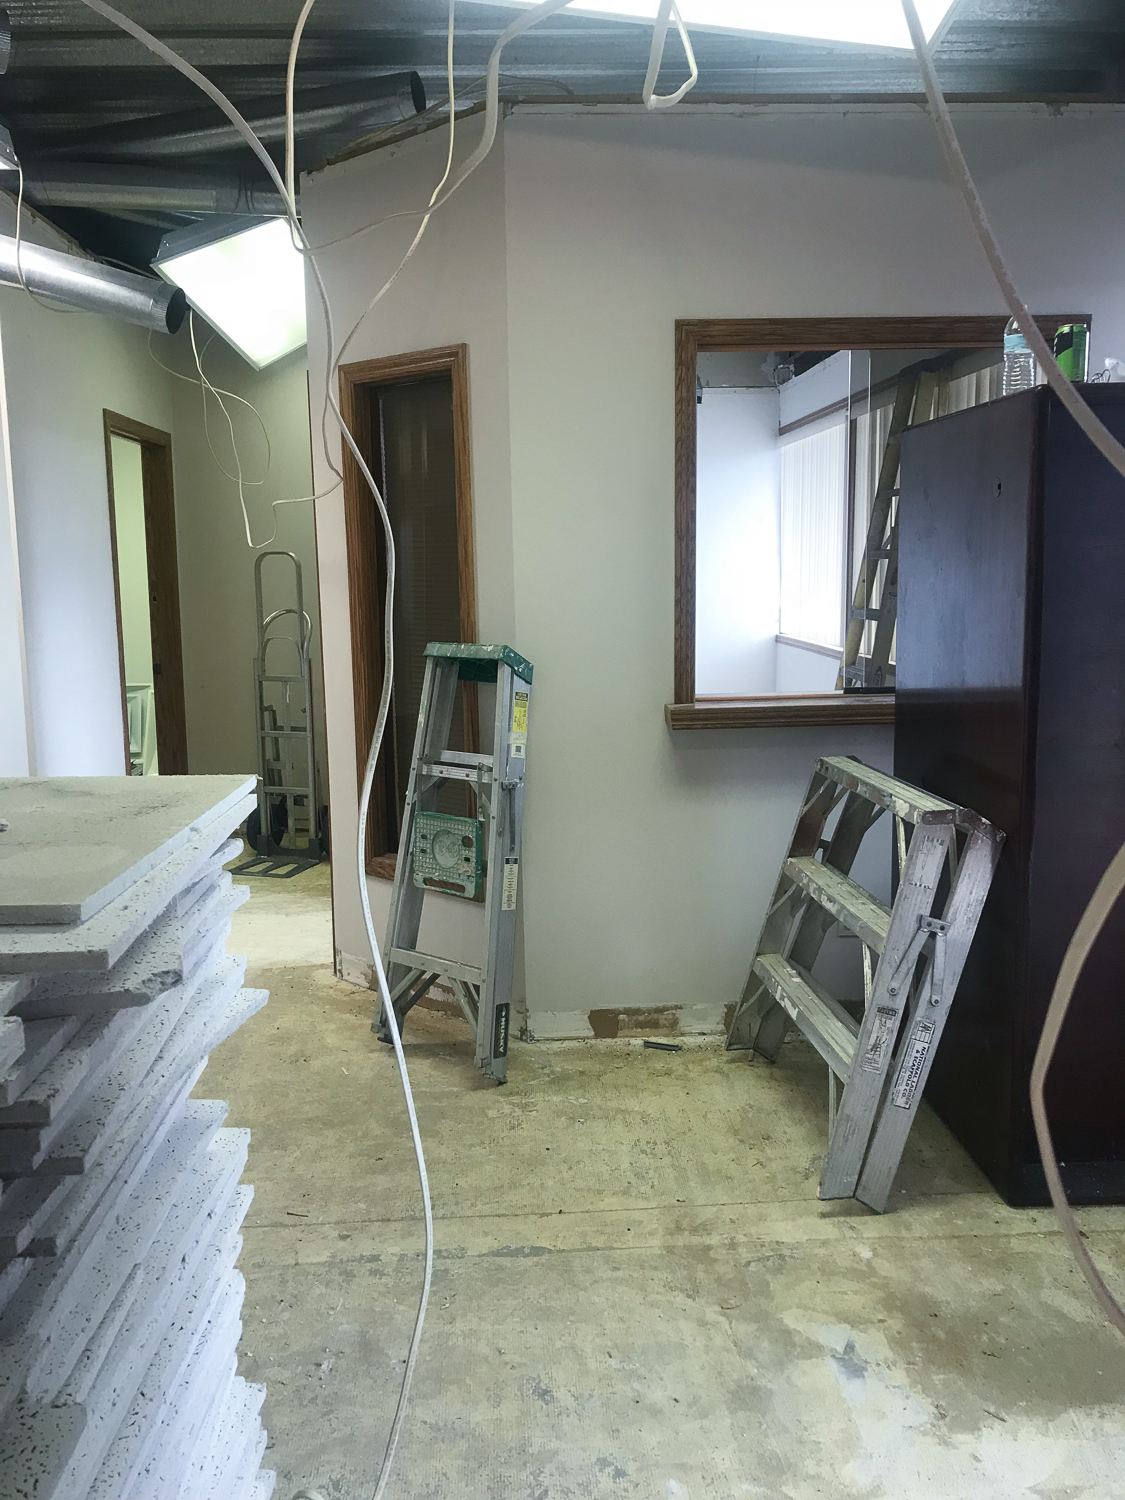 DURING - Drywall was delivered, drop ceiling was removed